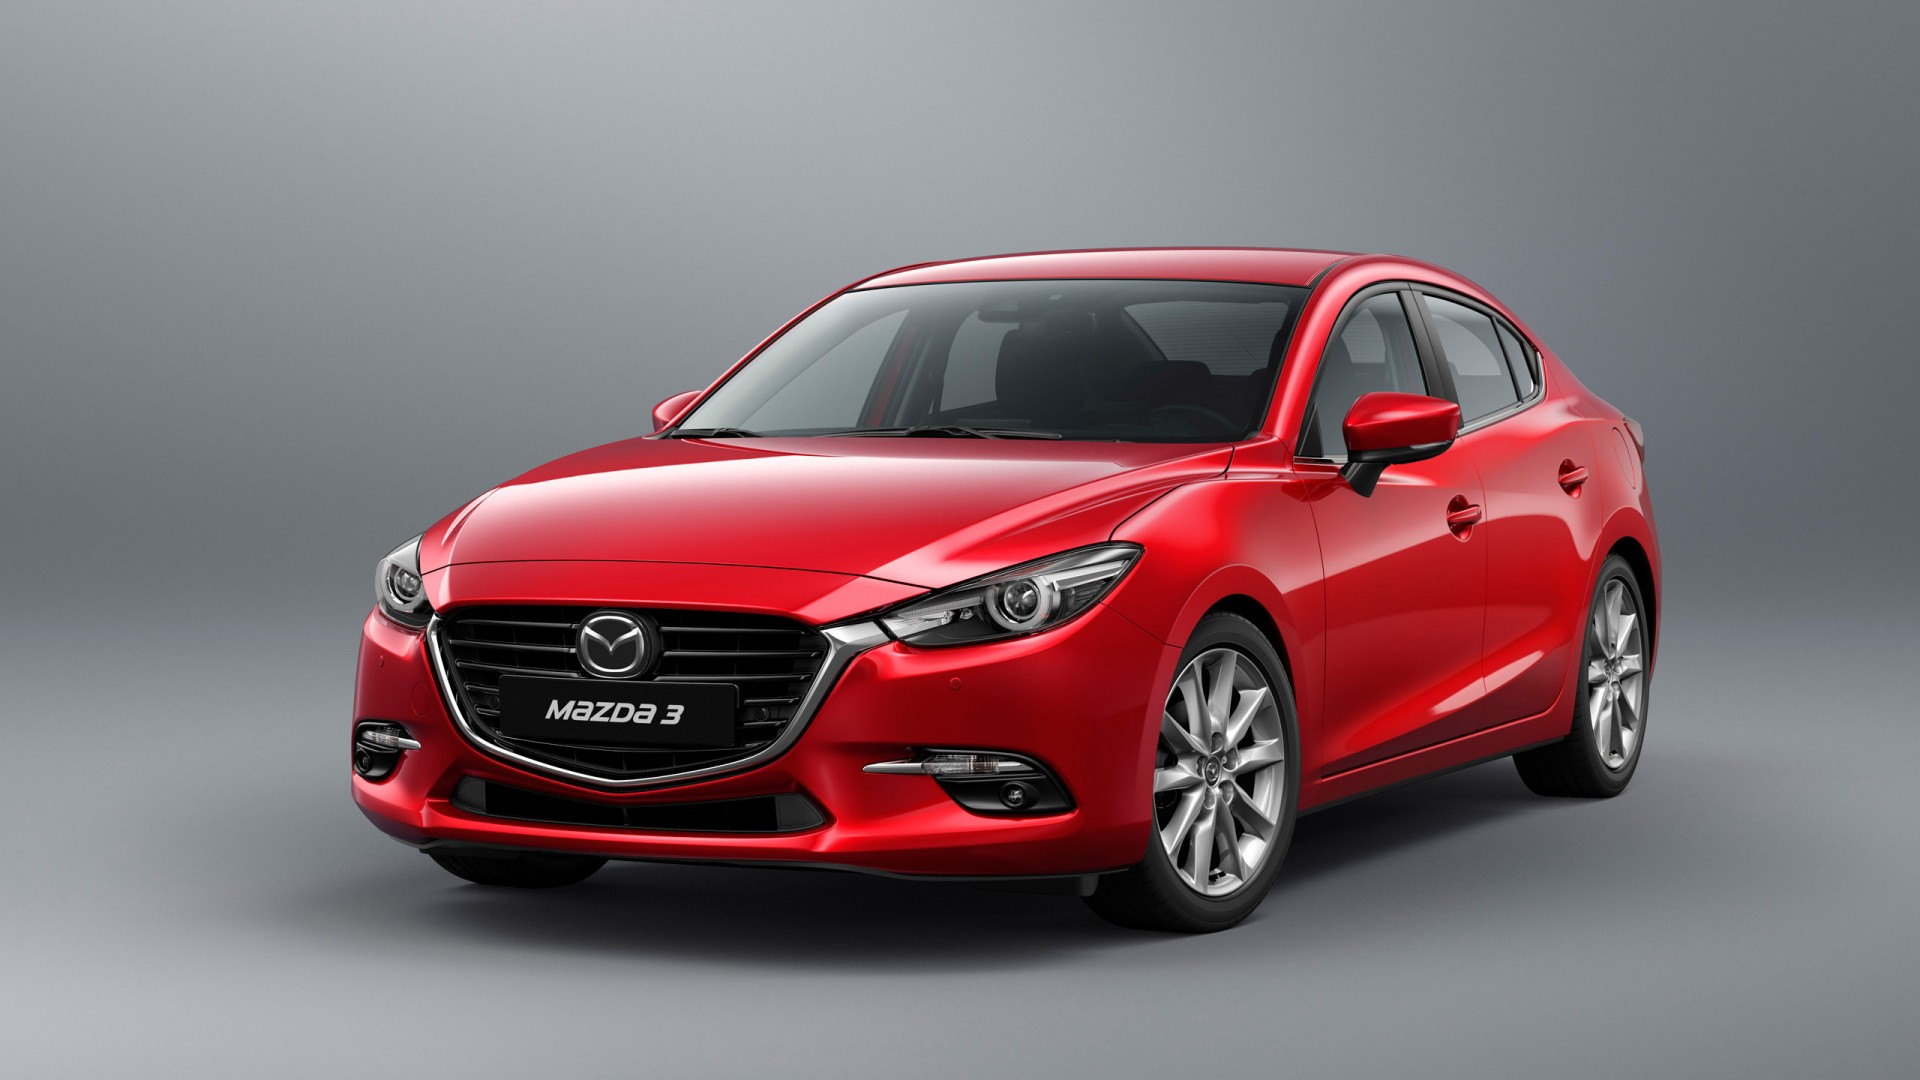 2017 Mazda 3 Wallpaper HD Car Wallpapers ID 7063